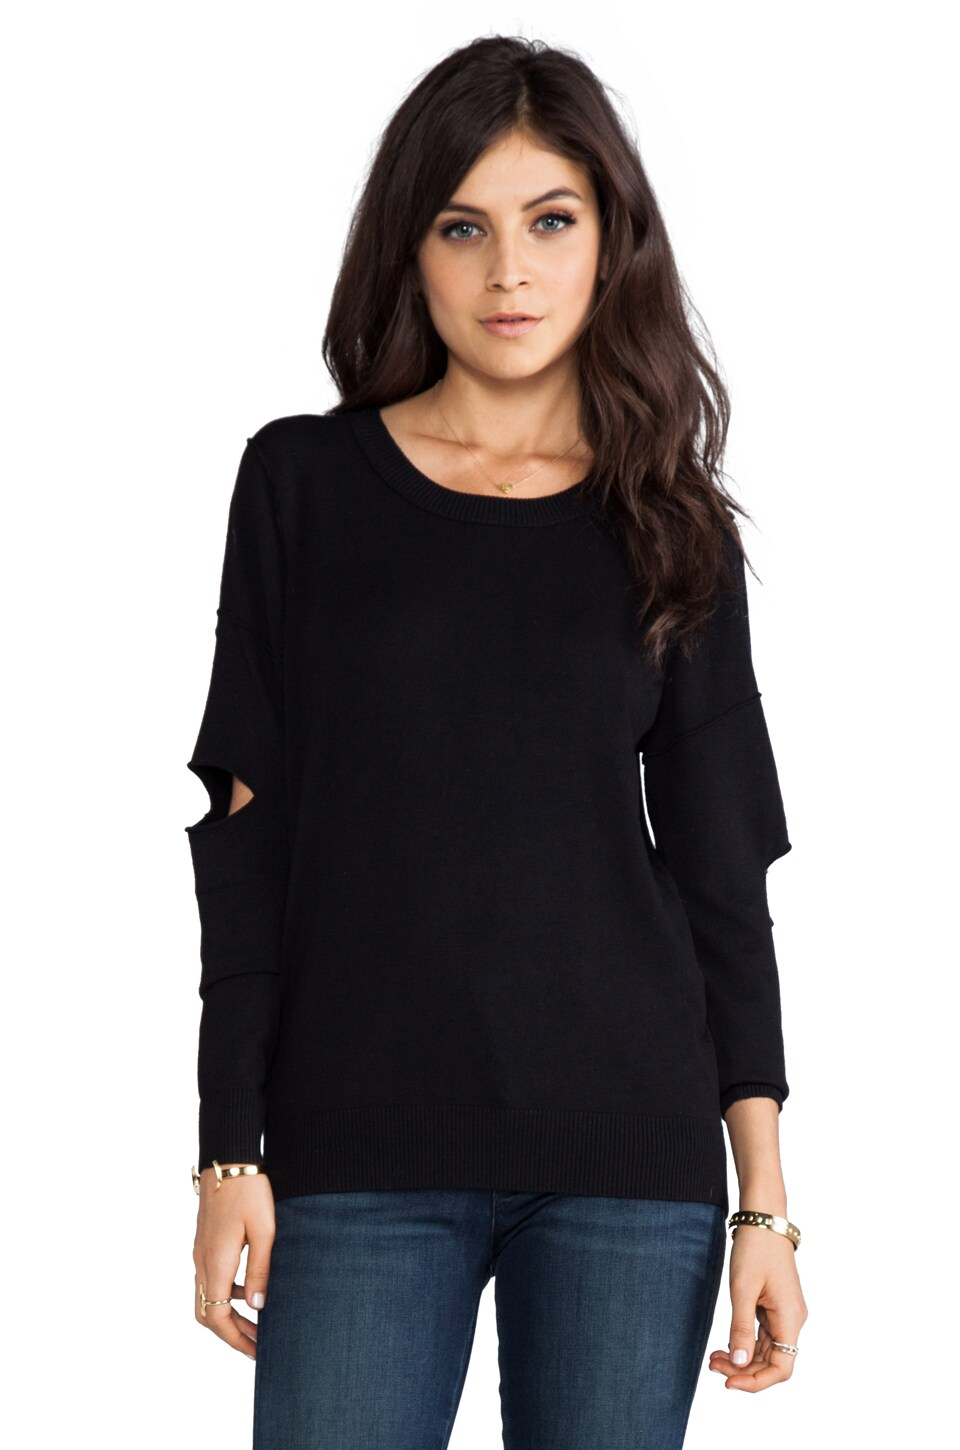 Central Park West Barclay Cutout Sleeve Pullover in Black